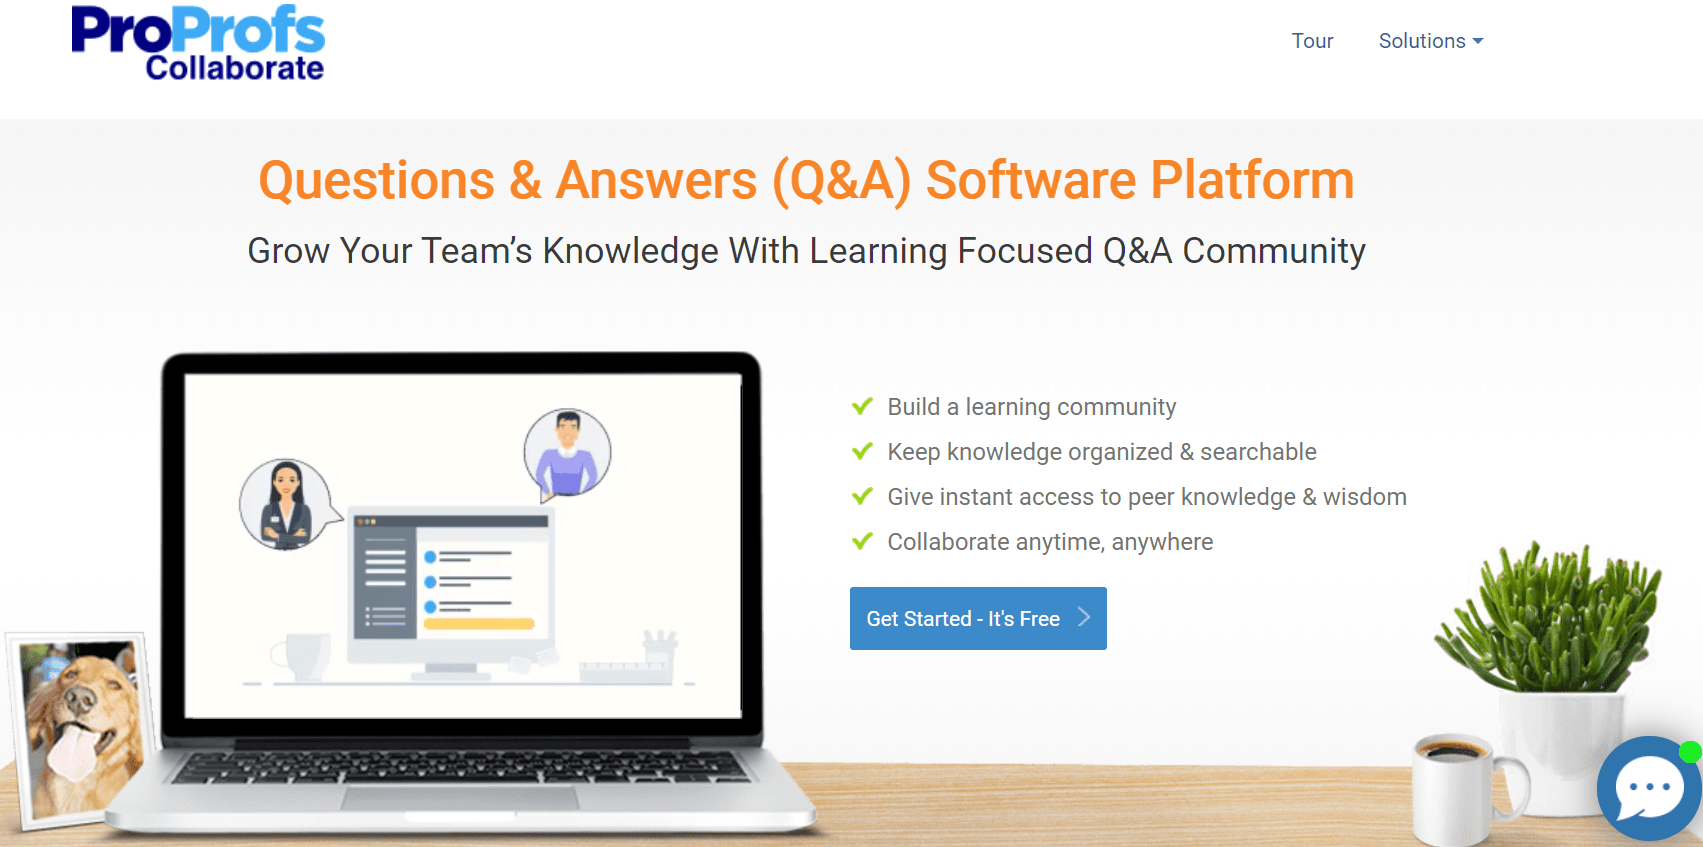 ProProfs Collaborate Software